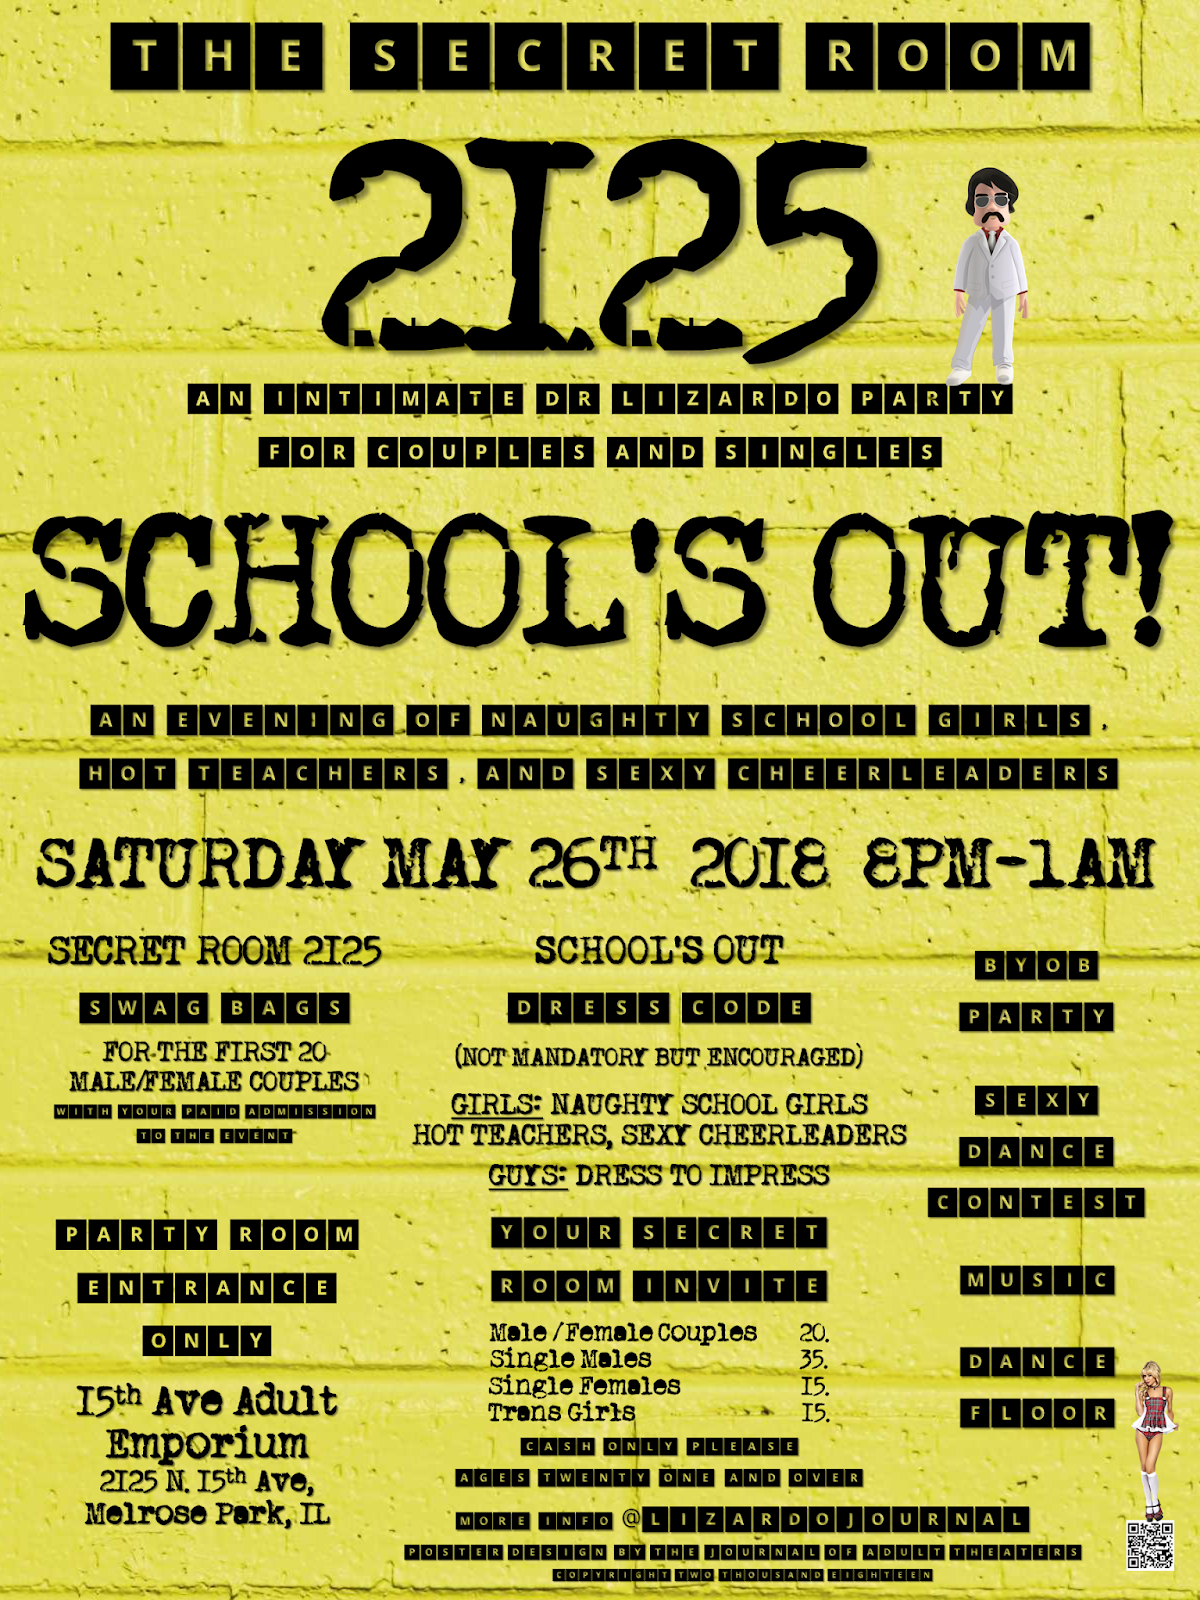 The Secret Room 2125: School's Out Party at 15th Ave. Adult Theater Party Room in Chicago!